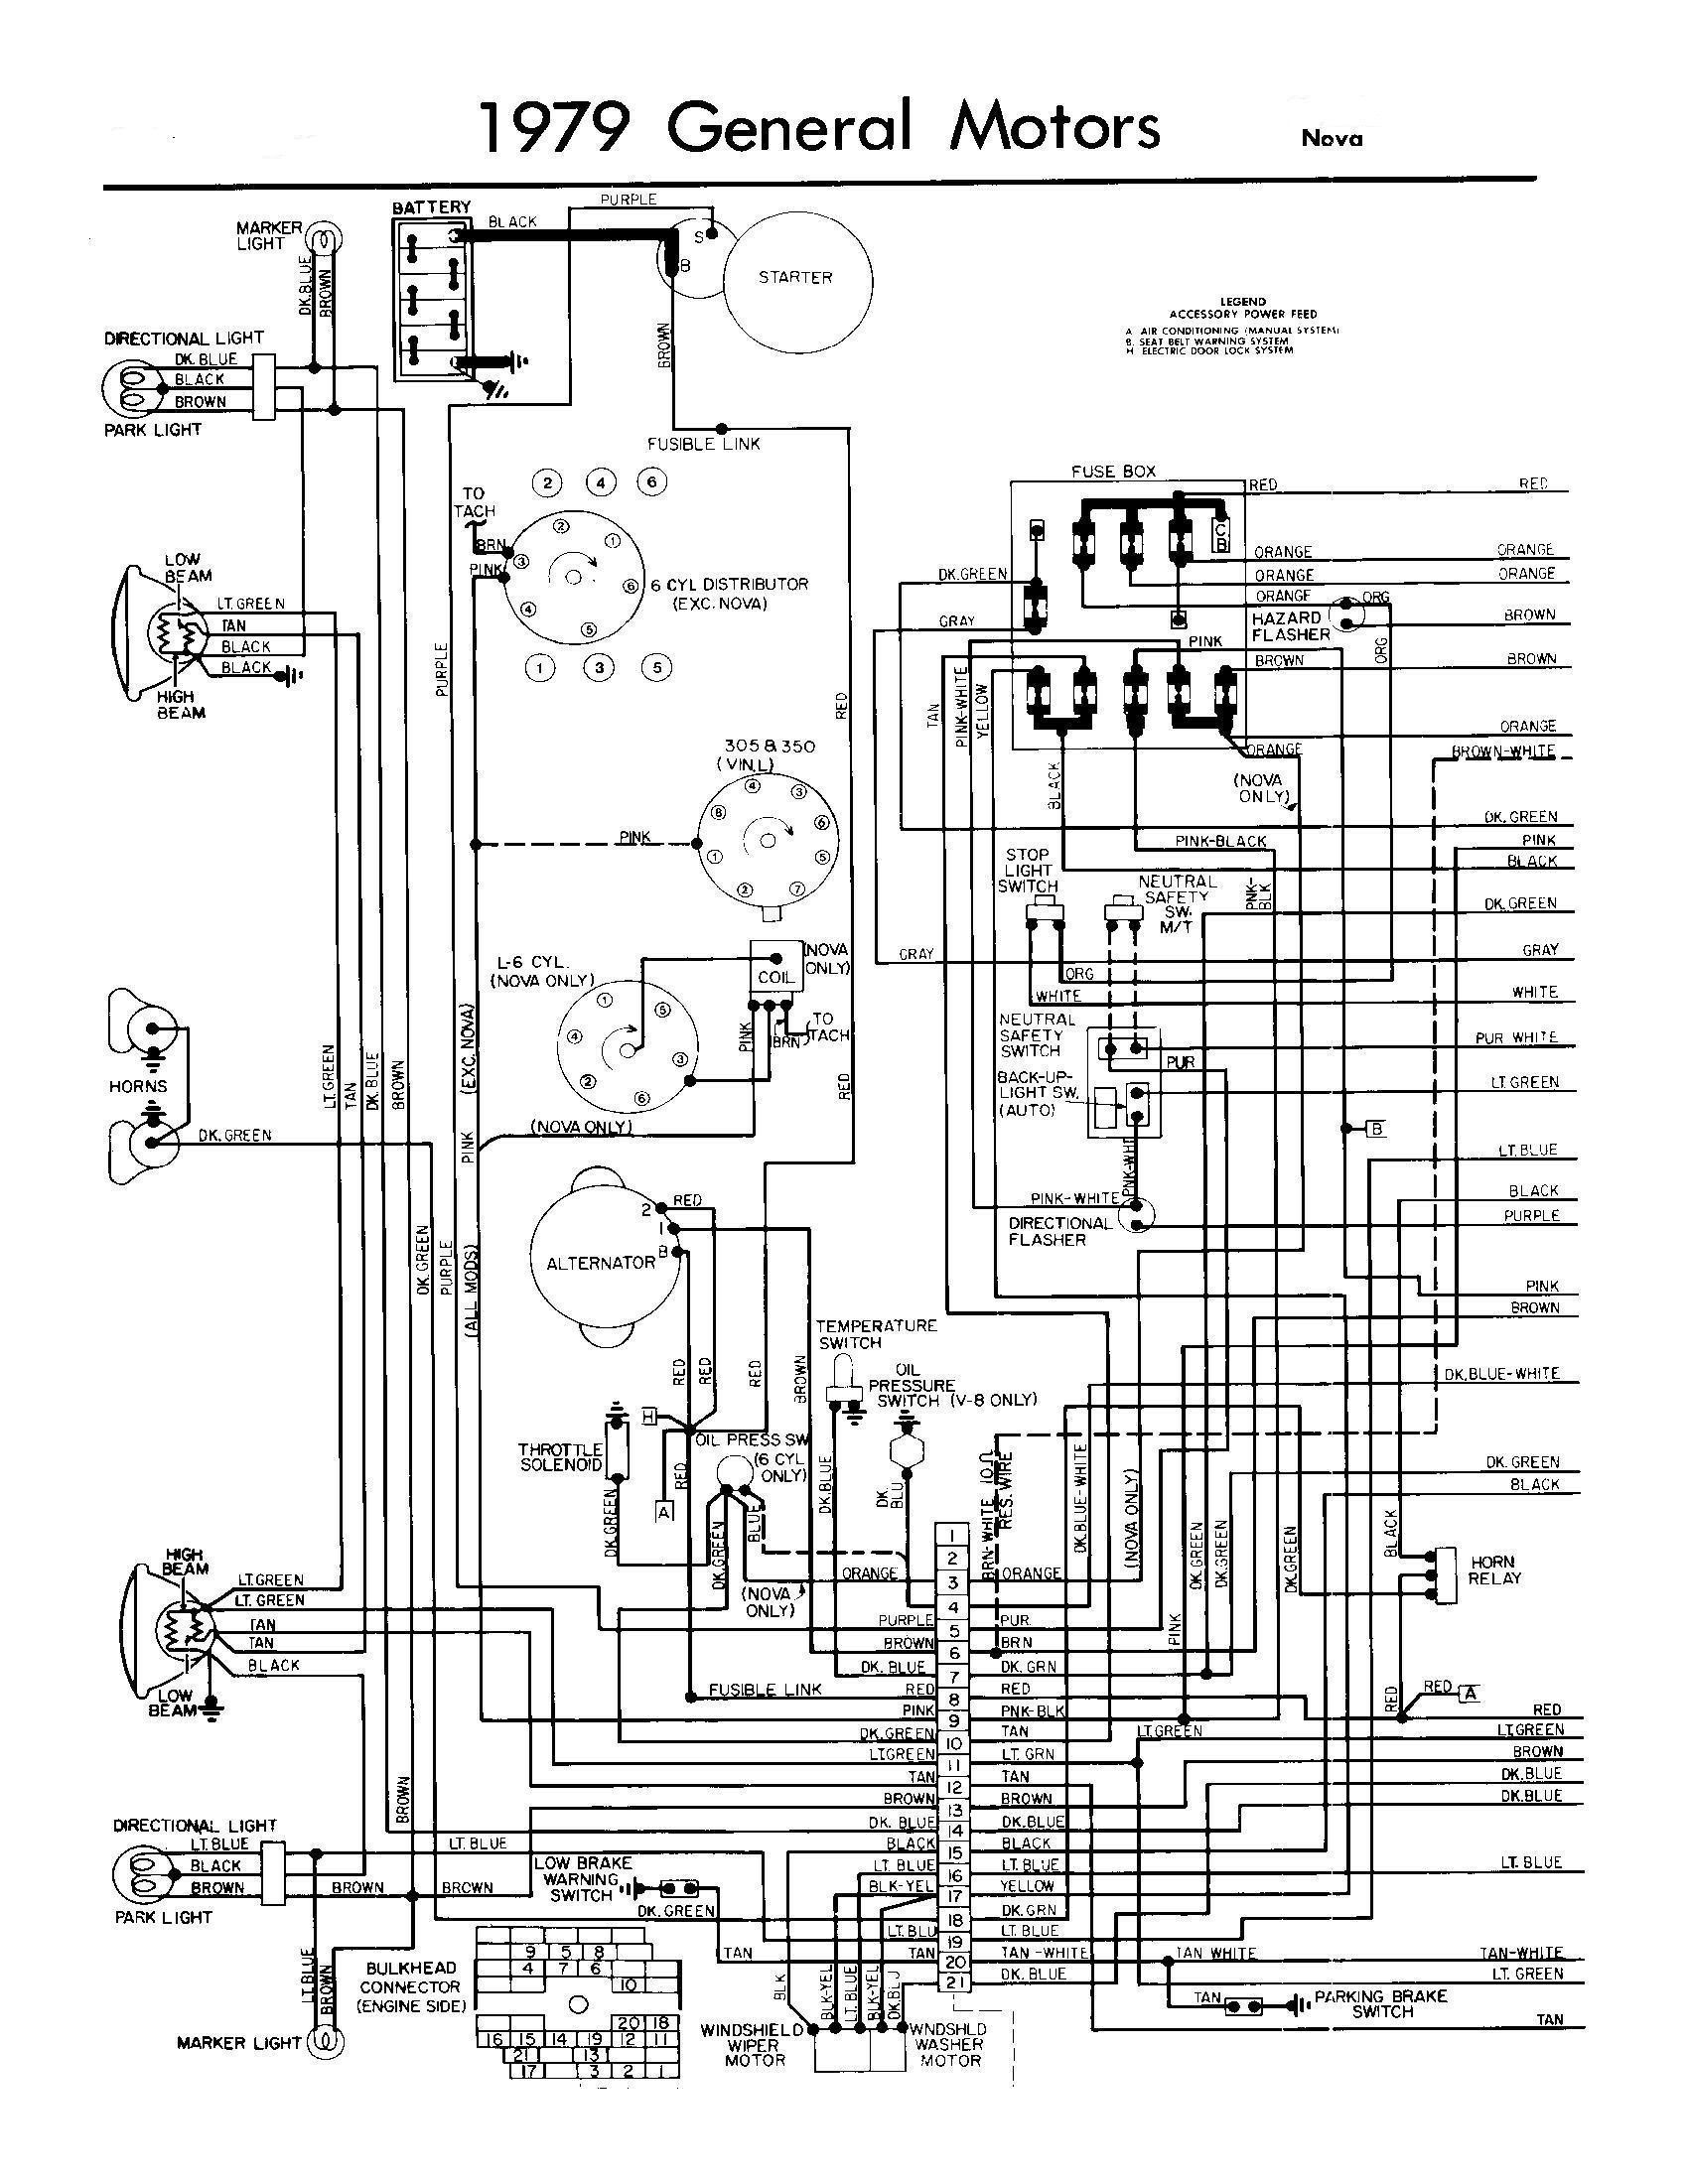 Mack Truck Wiring Harness 2001 - Wiring Diagrams User on